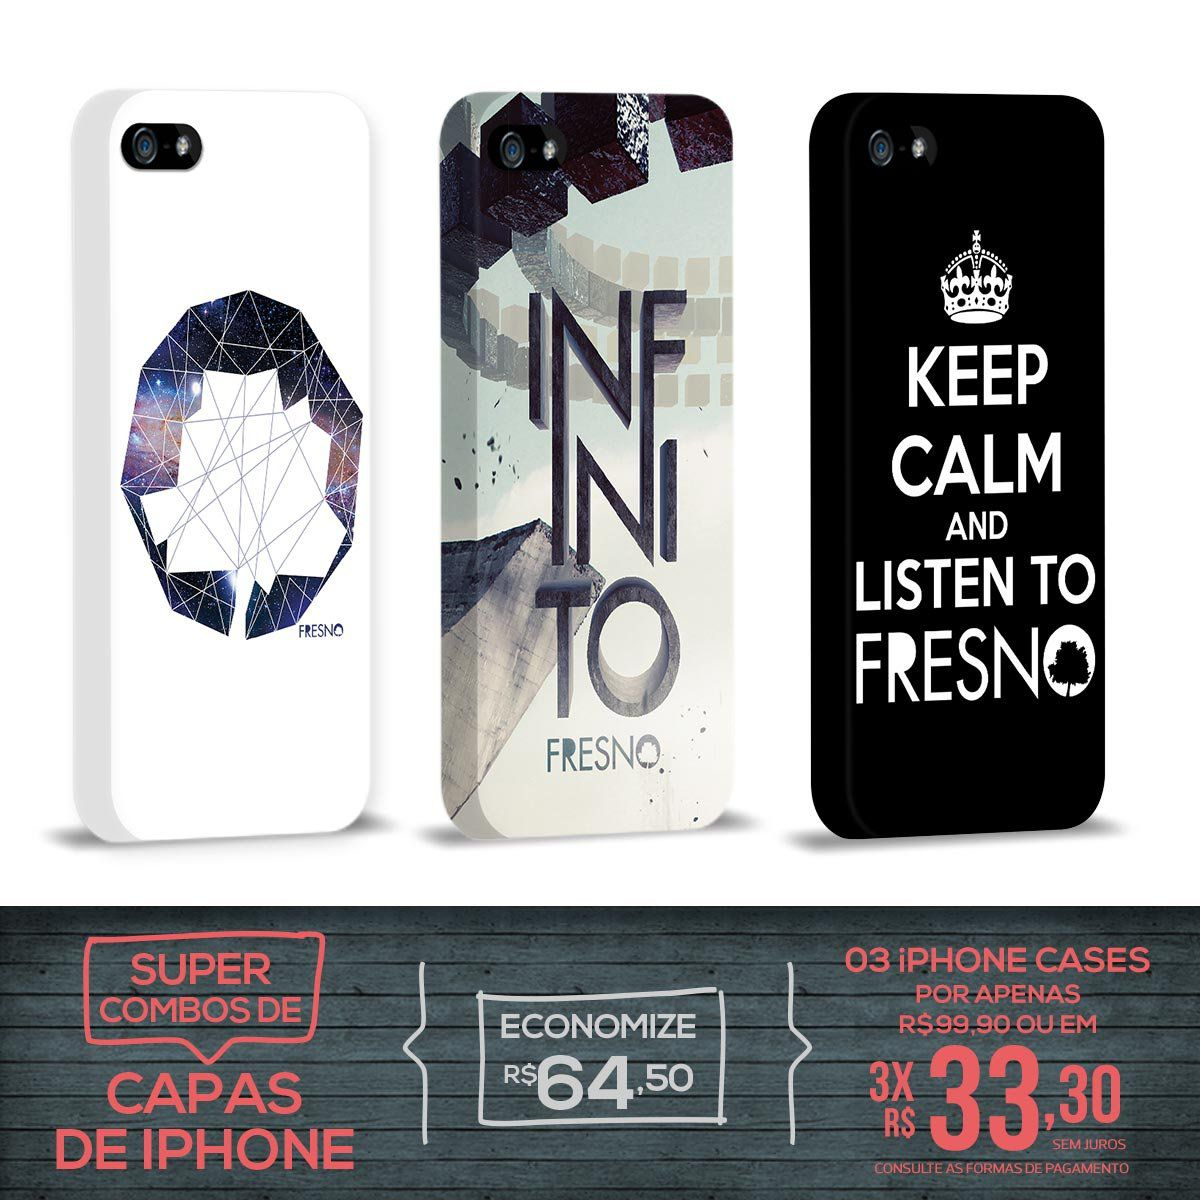 Kit Com 3 Capas de iPhone 5/5S Fresno - Infinito